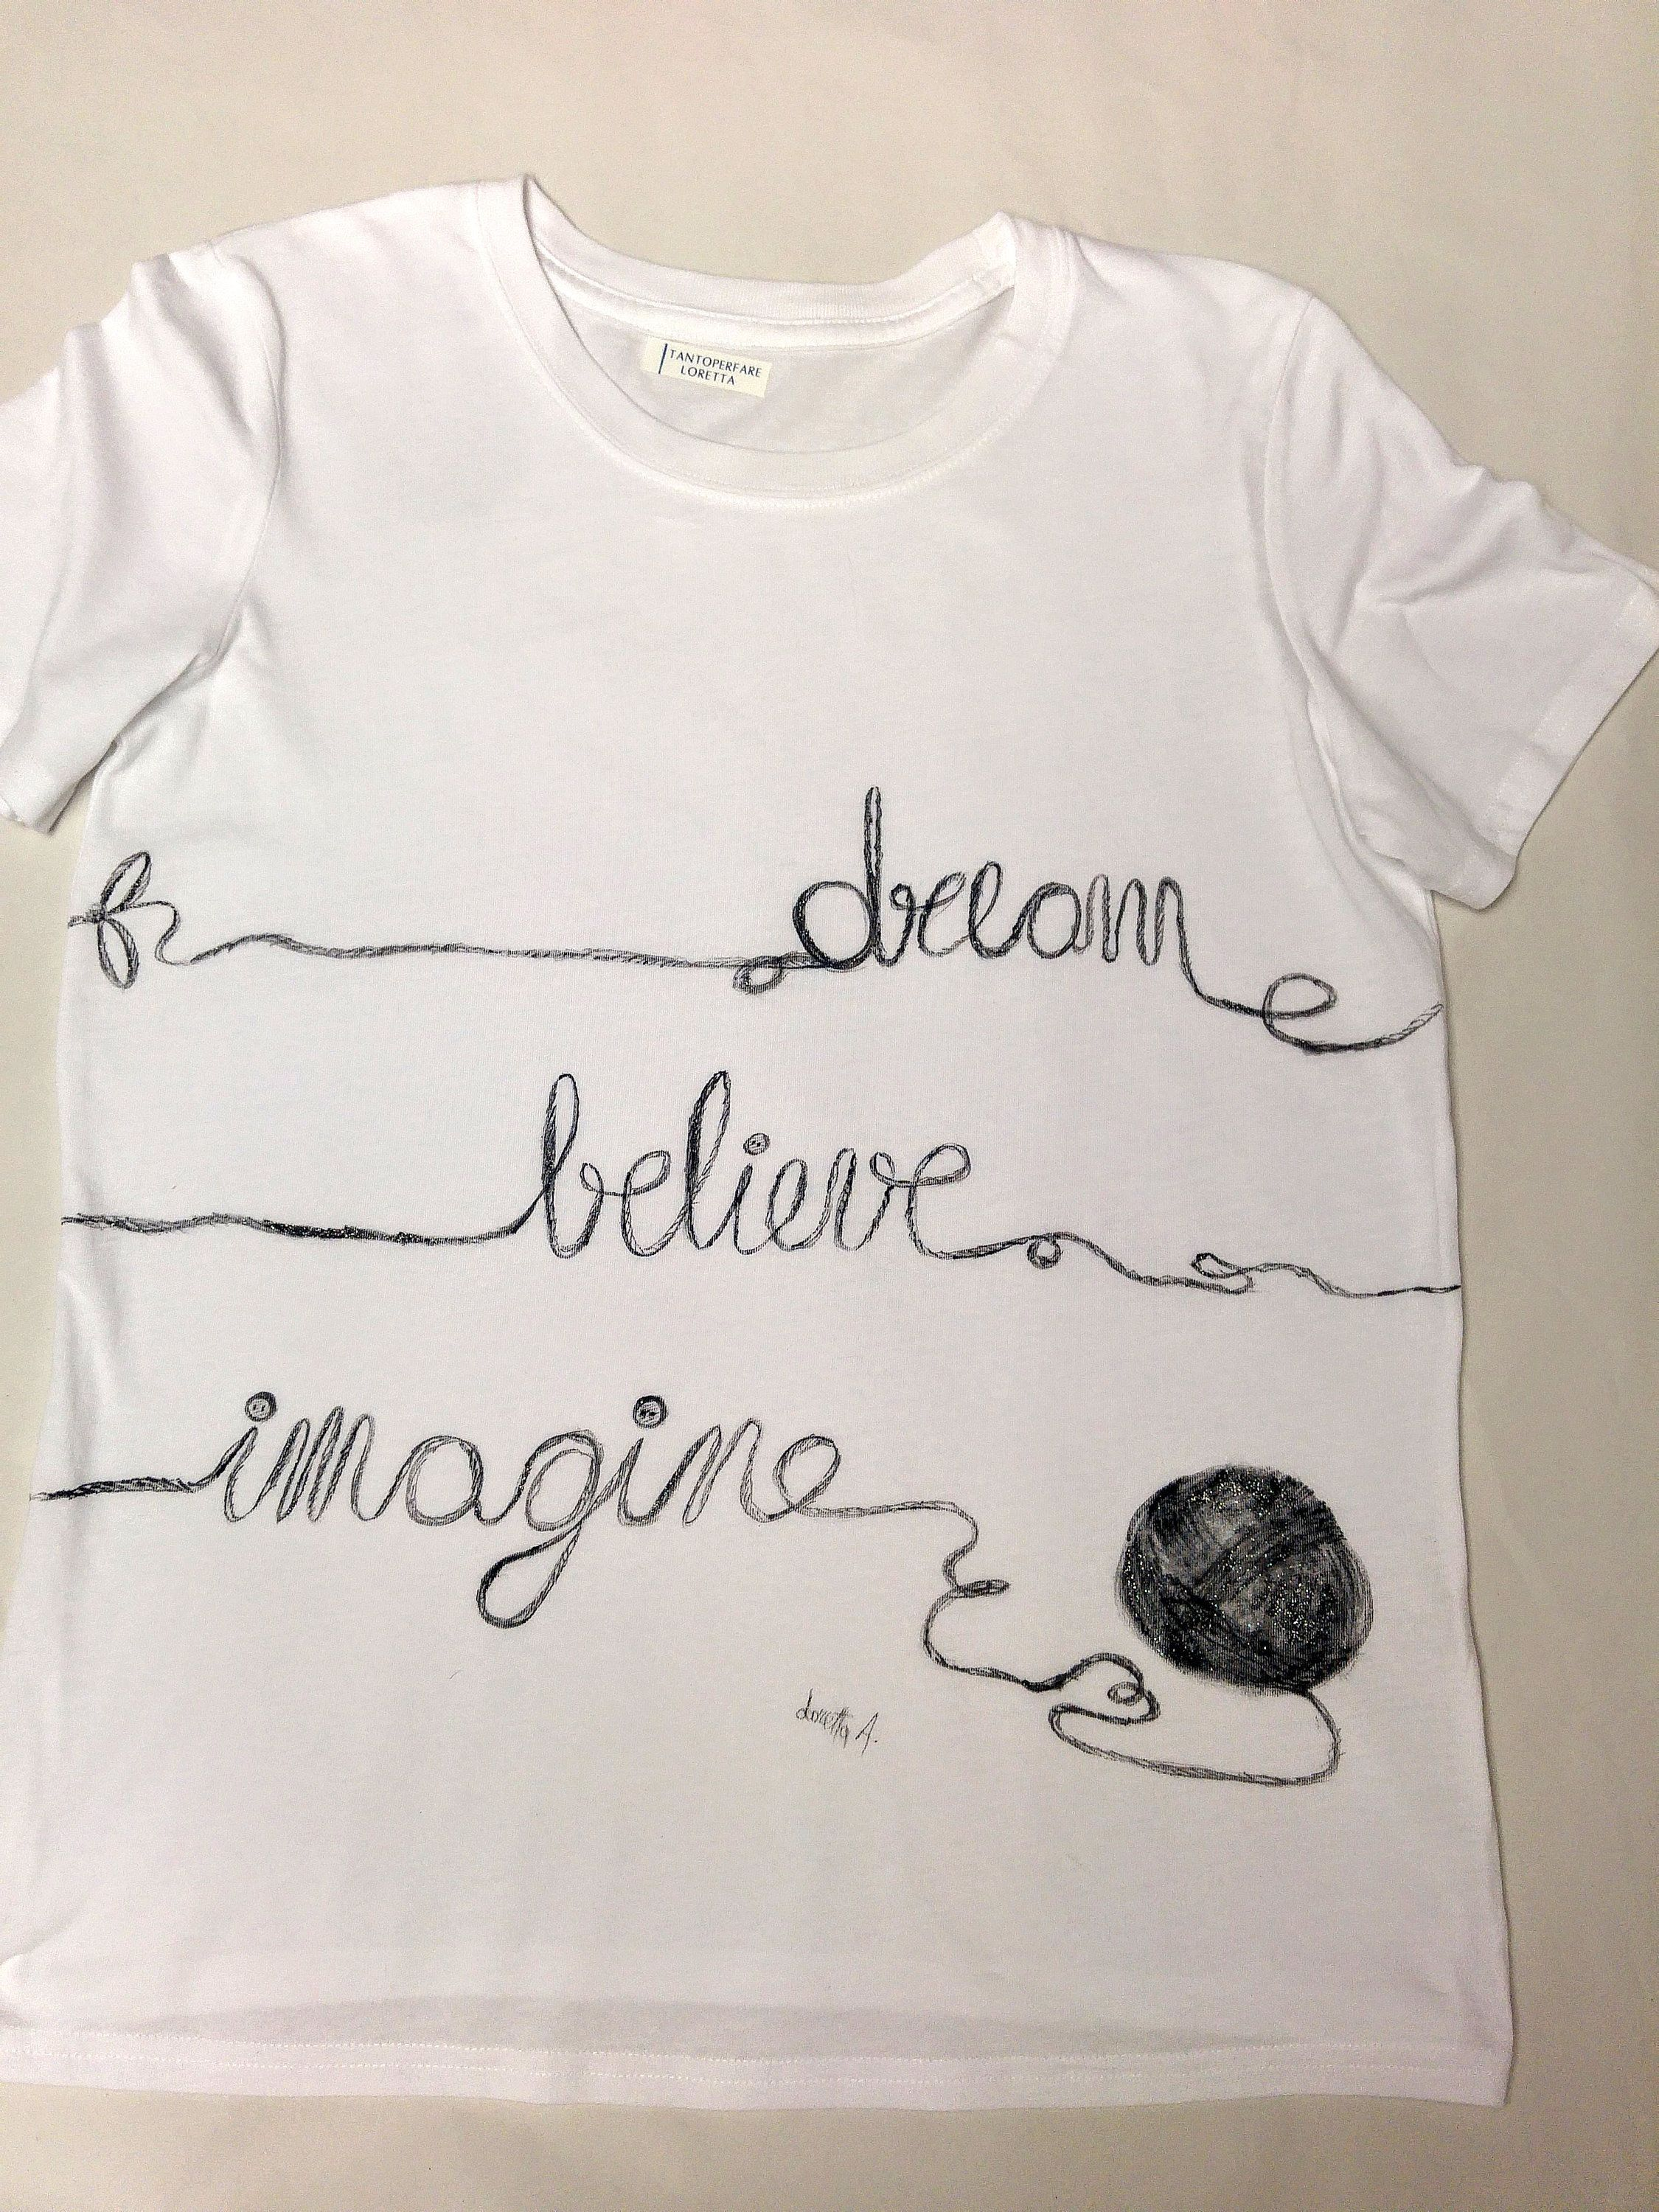 WOMANS SIGNORE RAGAZZE Vegan Vegetariano Pets Tumblr Fashion Animale Unicorno T Shirt